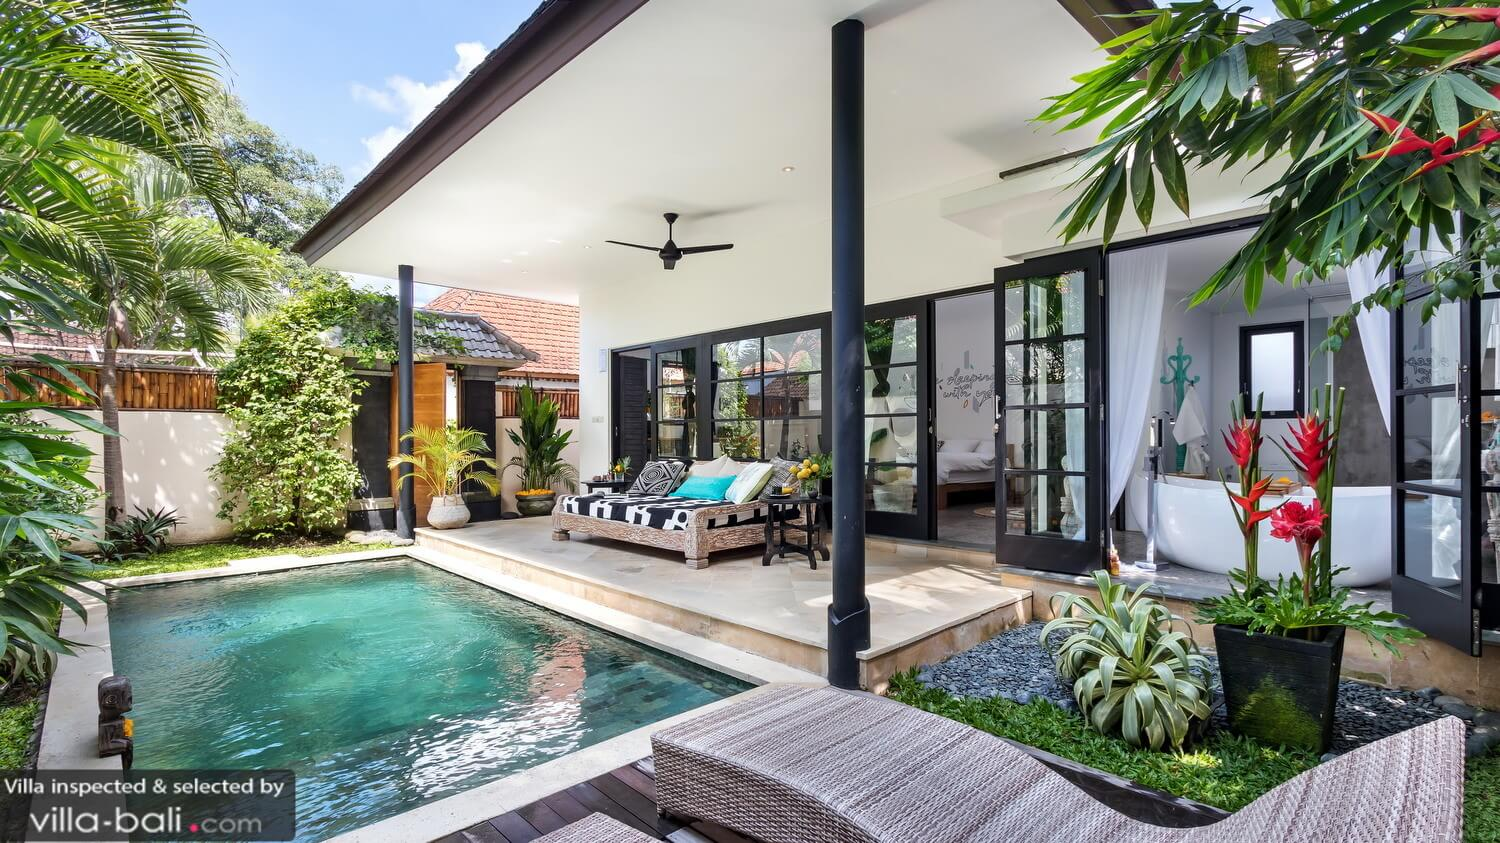 How To Find The Perfect Bali Villa Taylor S Tracks